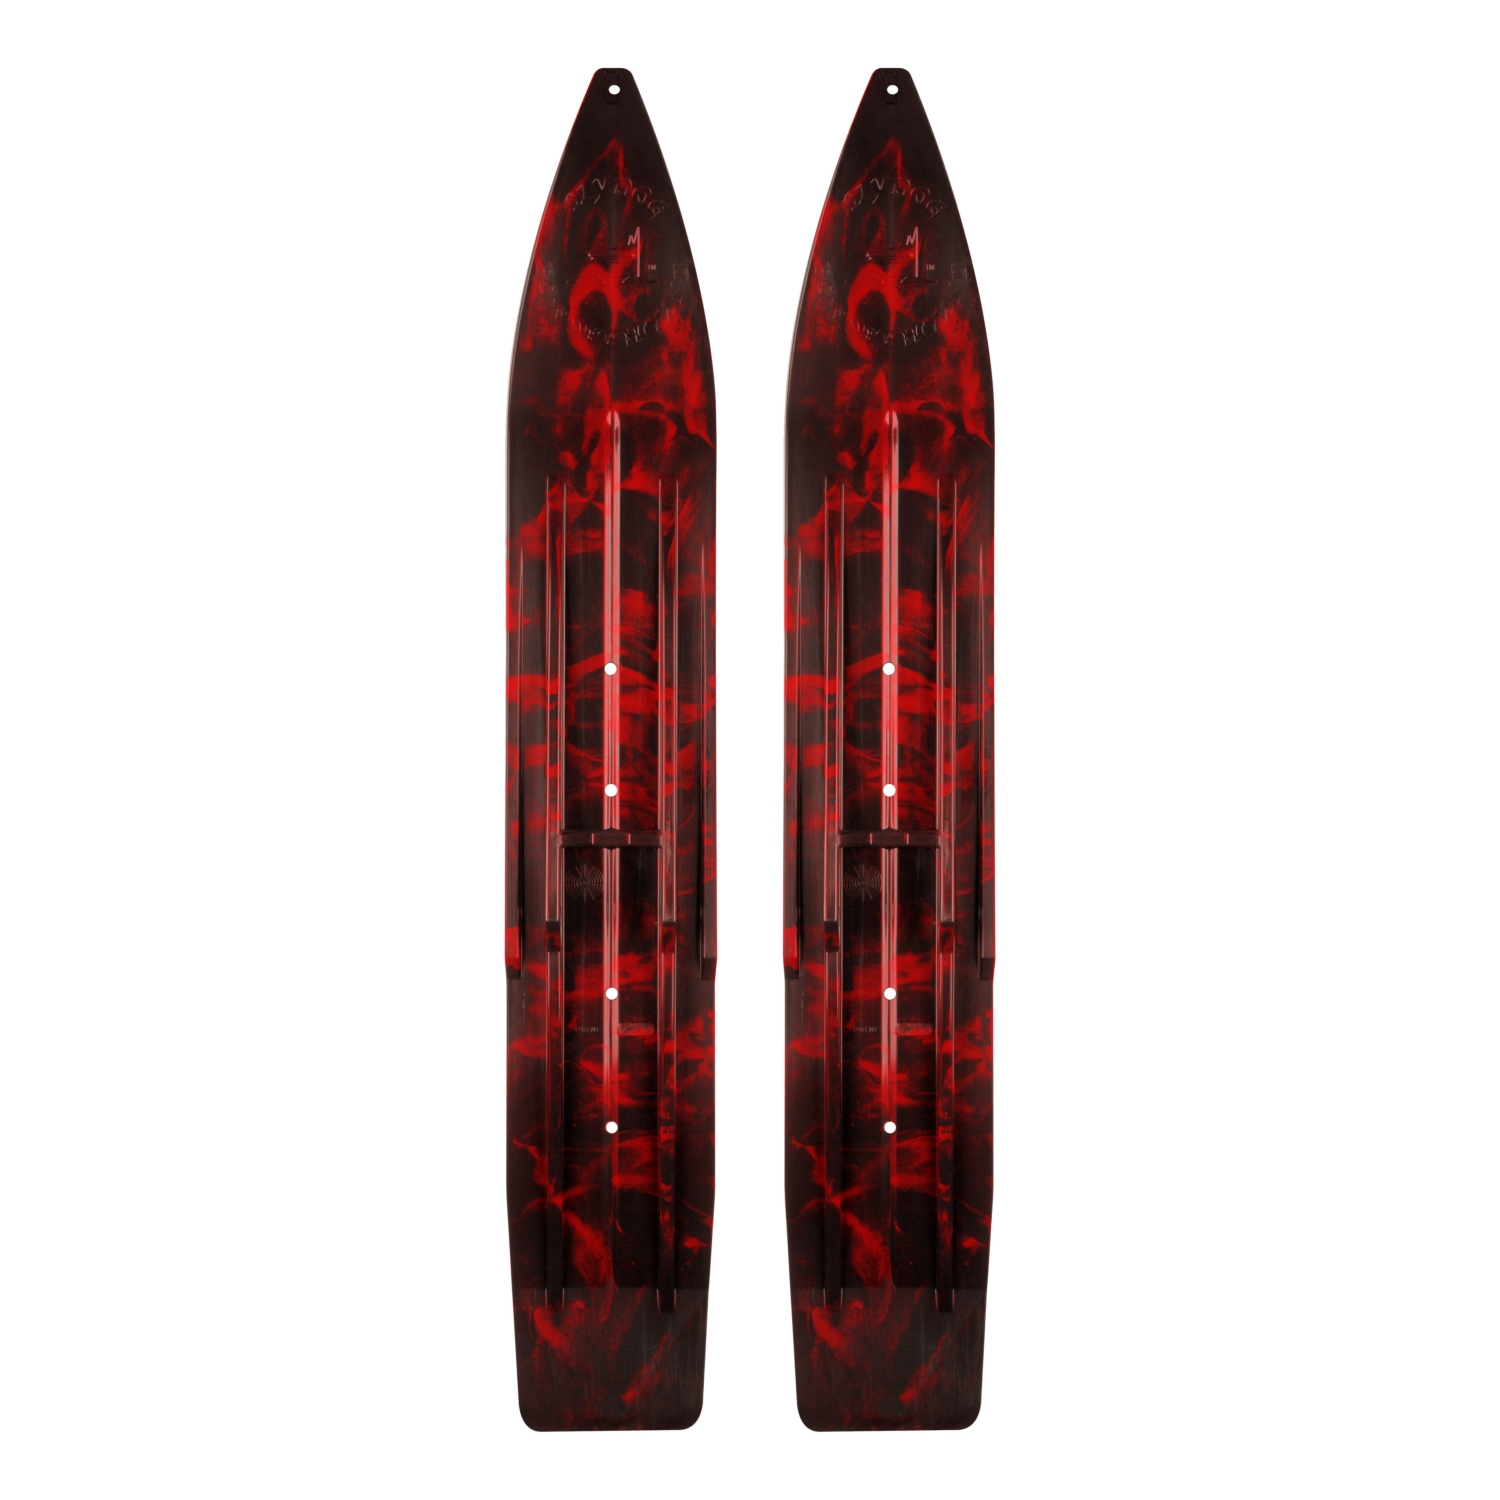 SLYDOG SKIS Powder Hound Ski Black, Red #310154 by SLYDOG SKIS